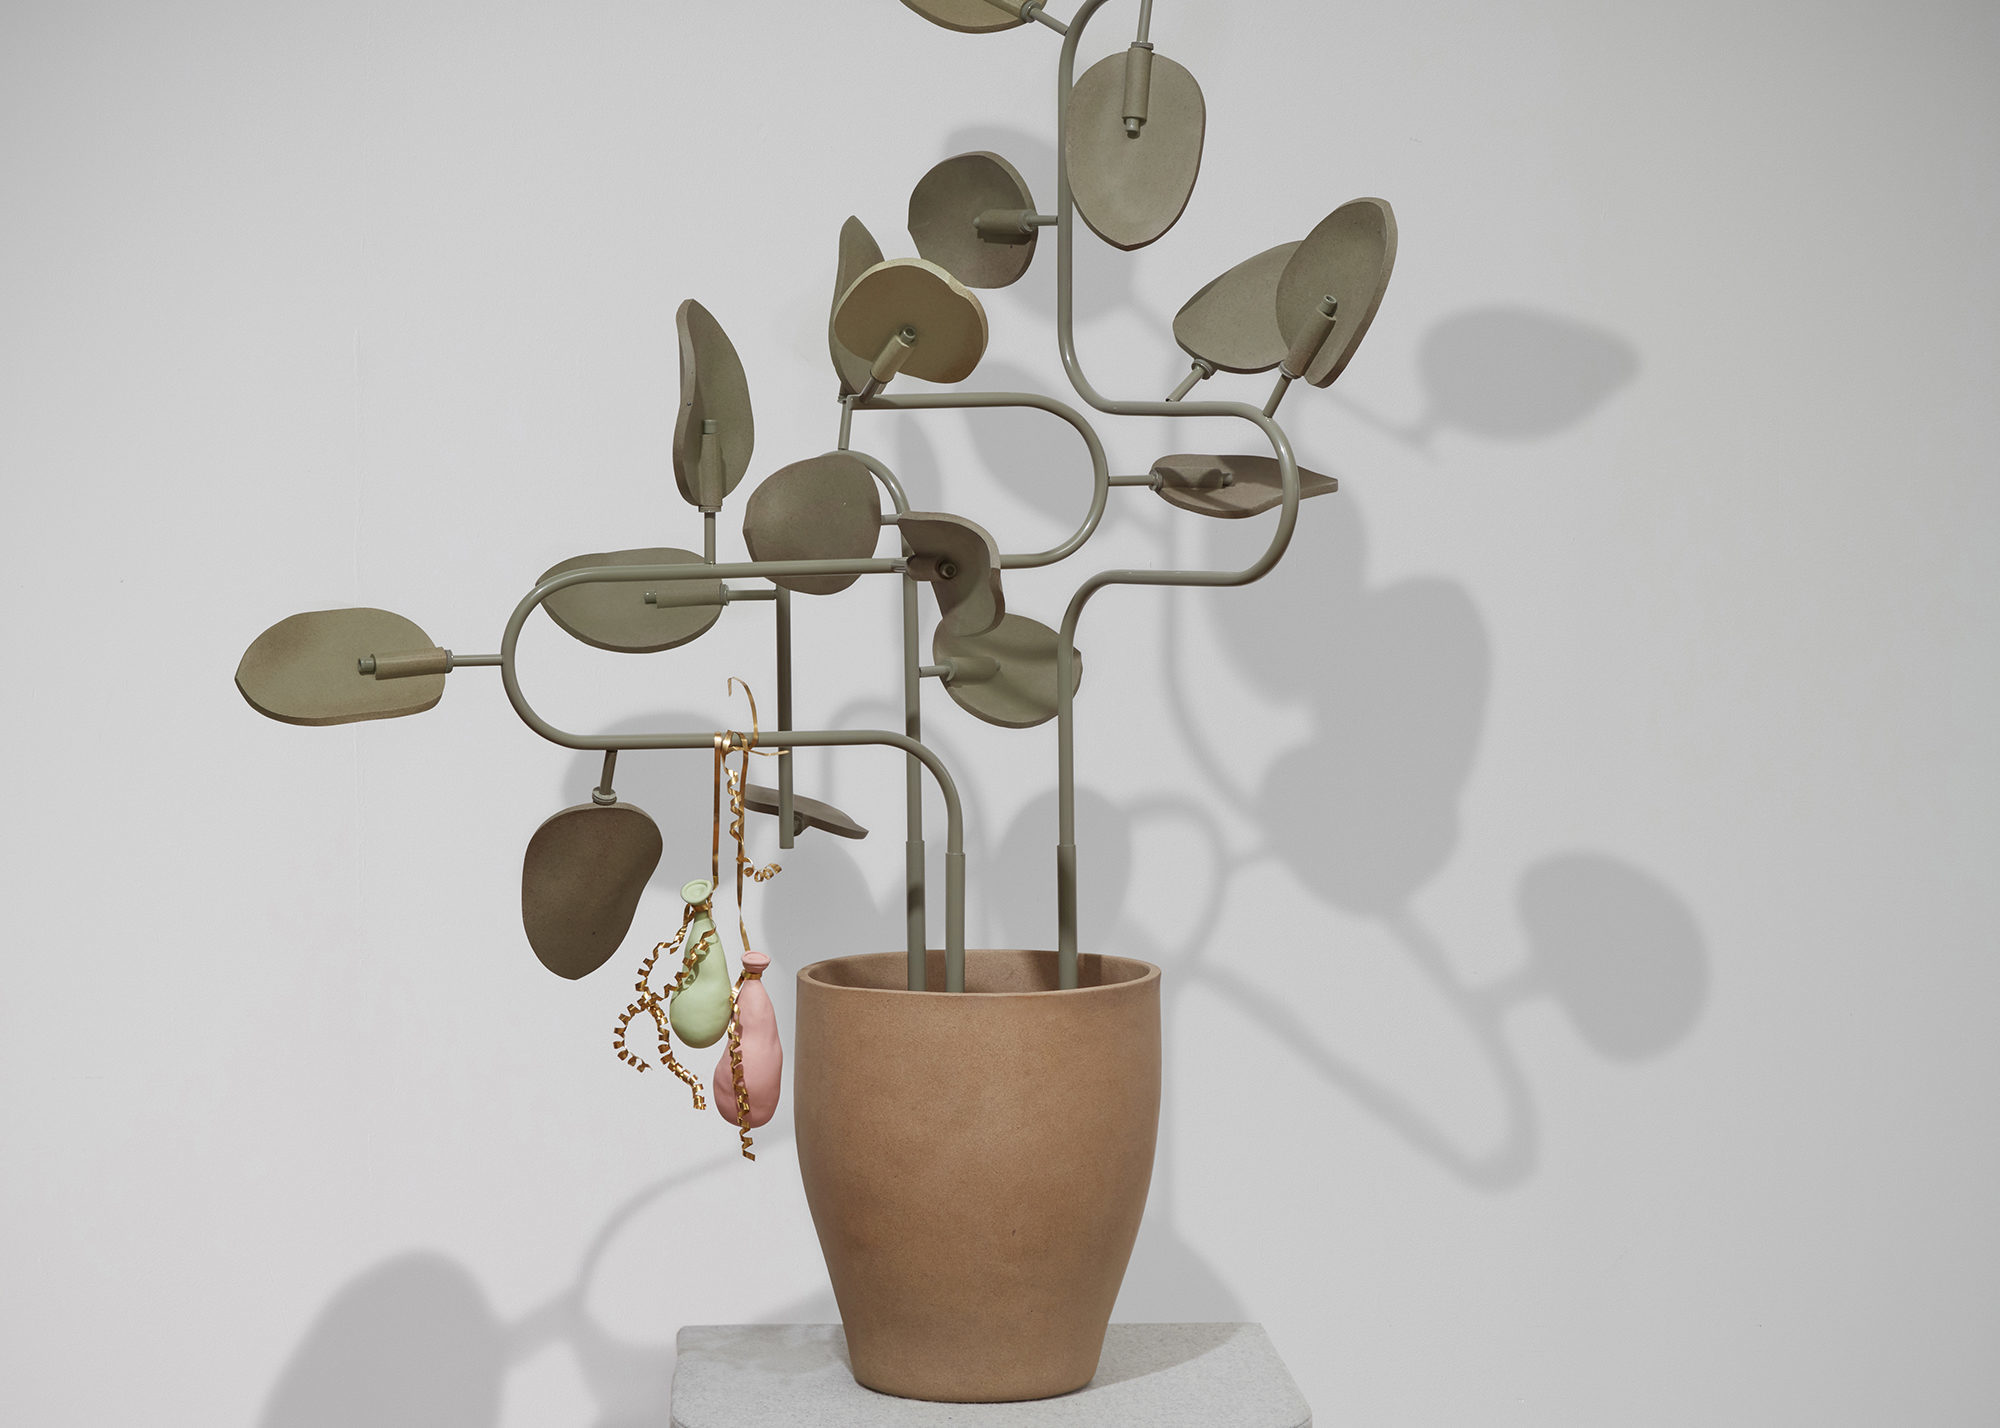 Plant-like sculptural object